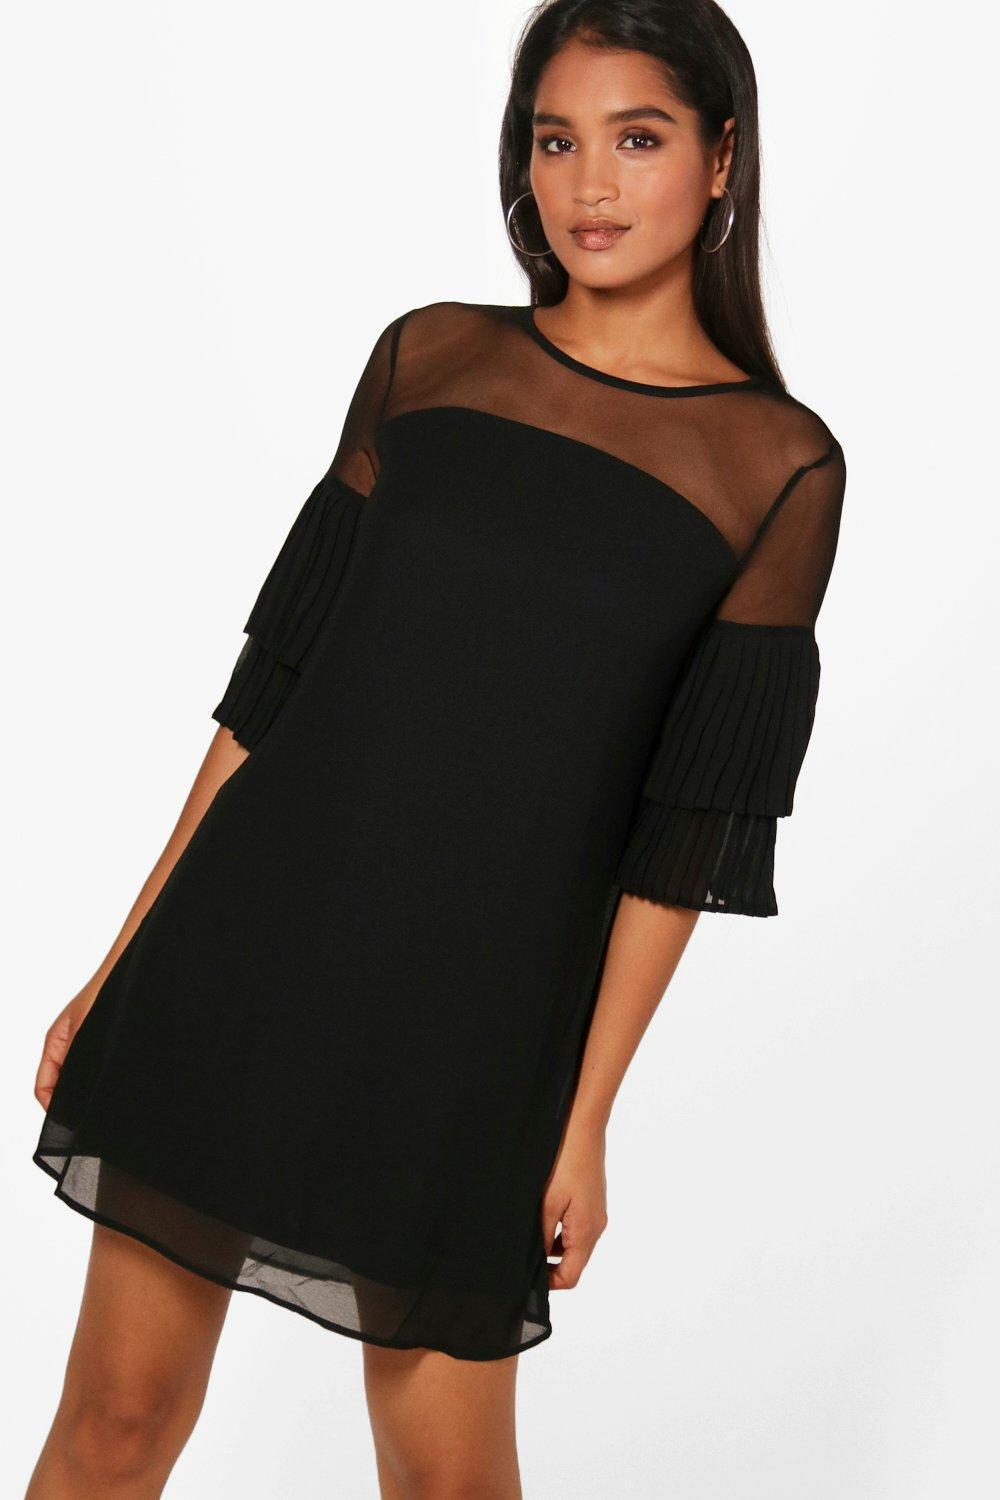 For Sale Cheap Real Boohoo Mesh Top Ruffle Sleeve Shift Dress Free Shipping Excellent Best Place Online Lf6J9NLpy9